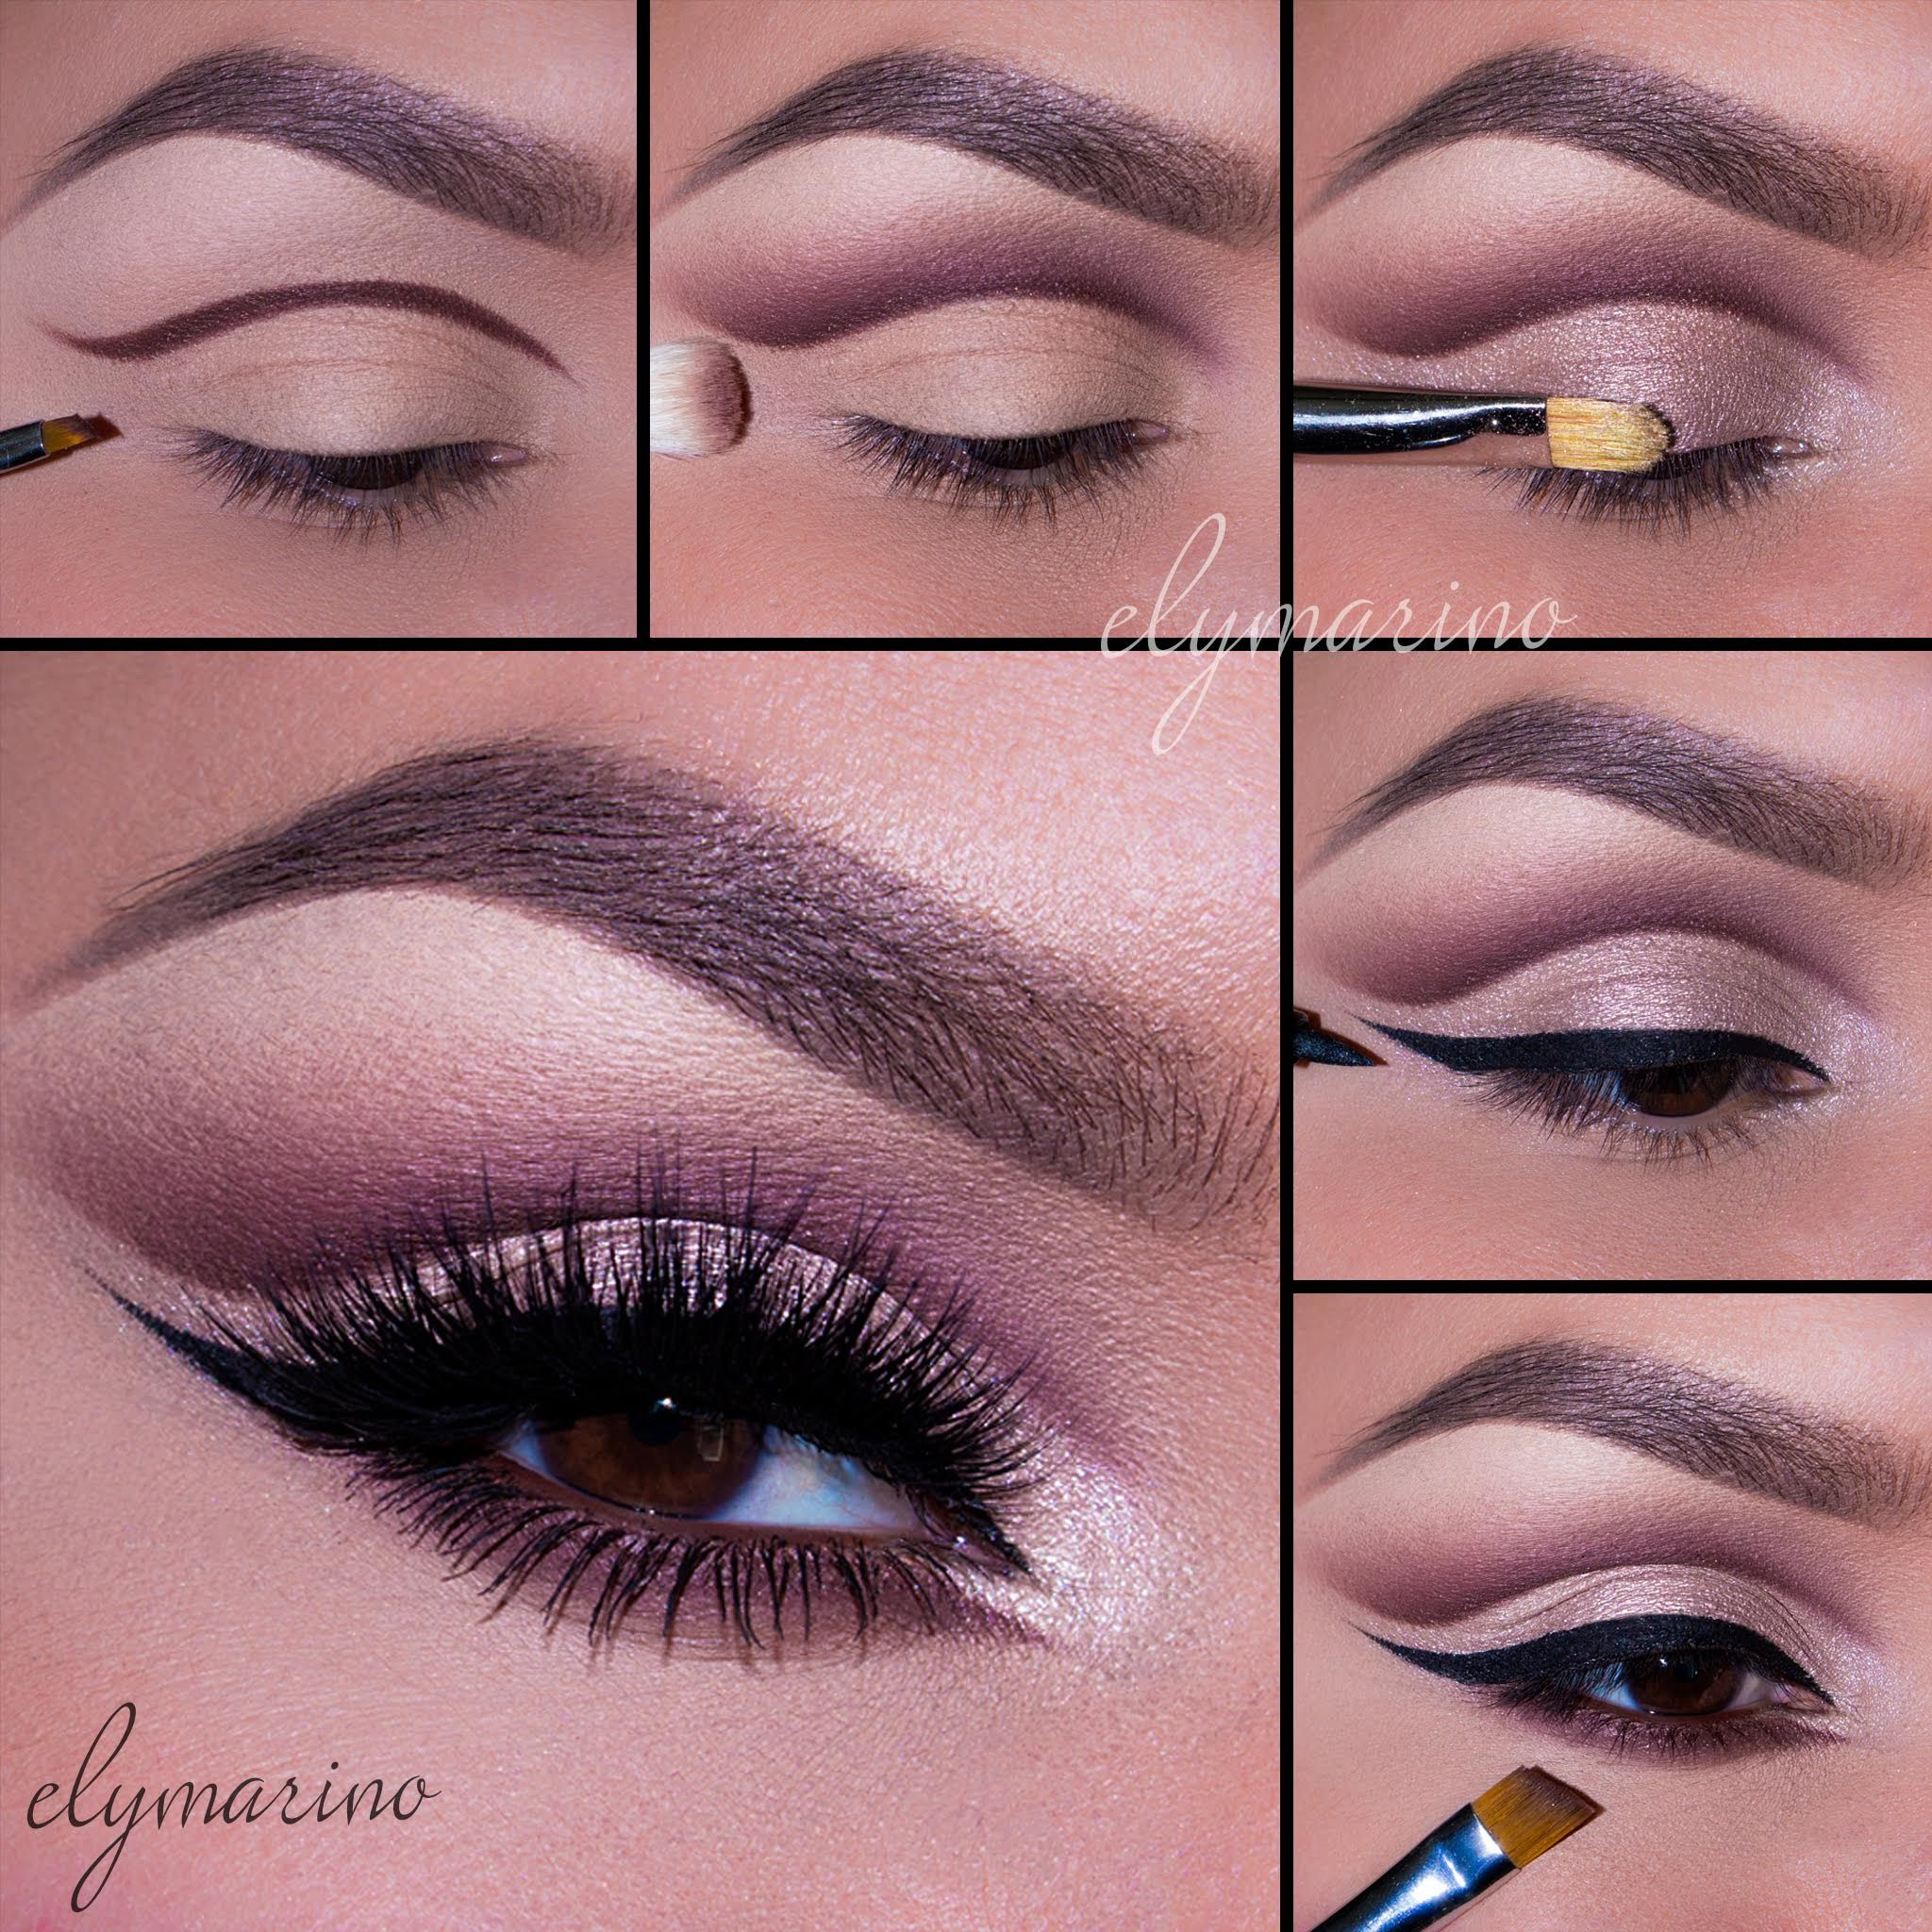 Get the look using the Third Edition 120 Color Eyeshadow Palette